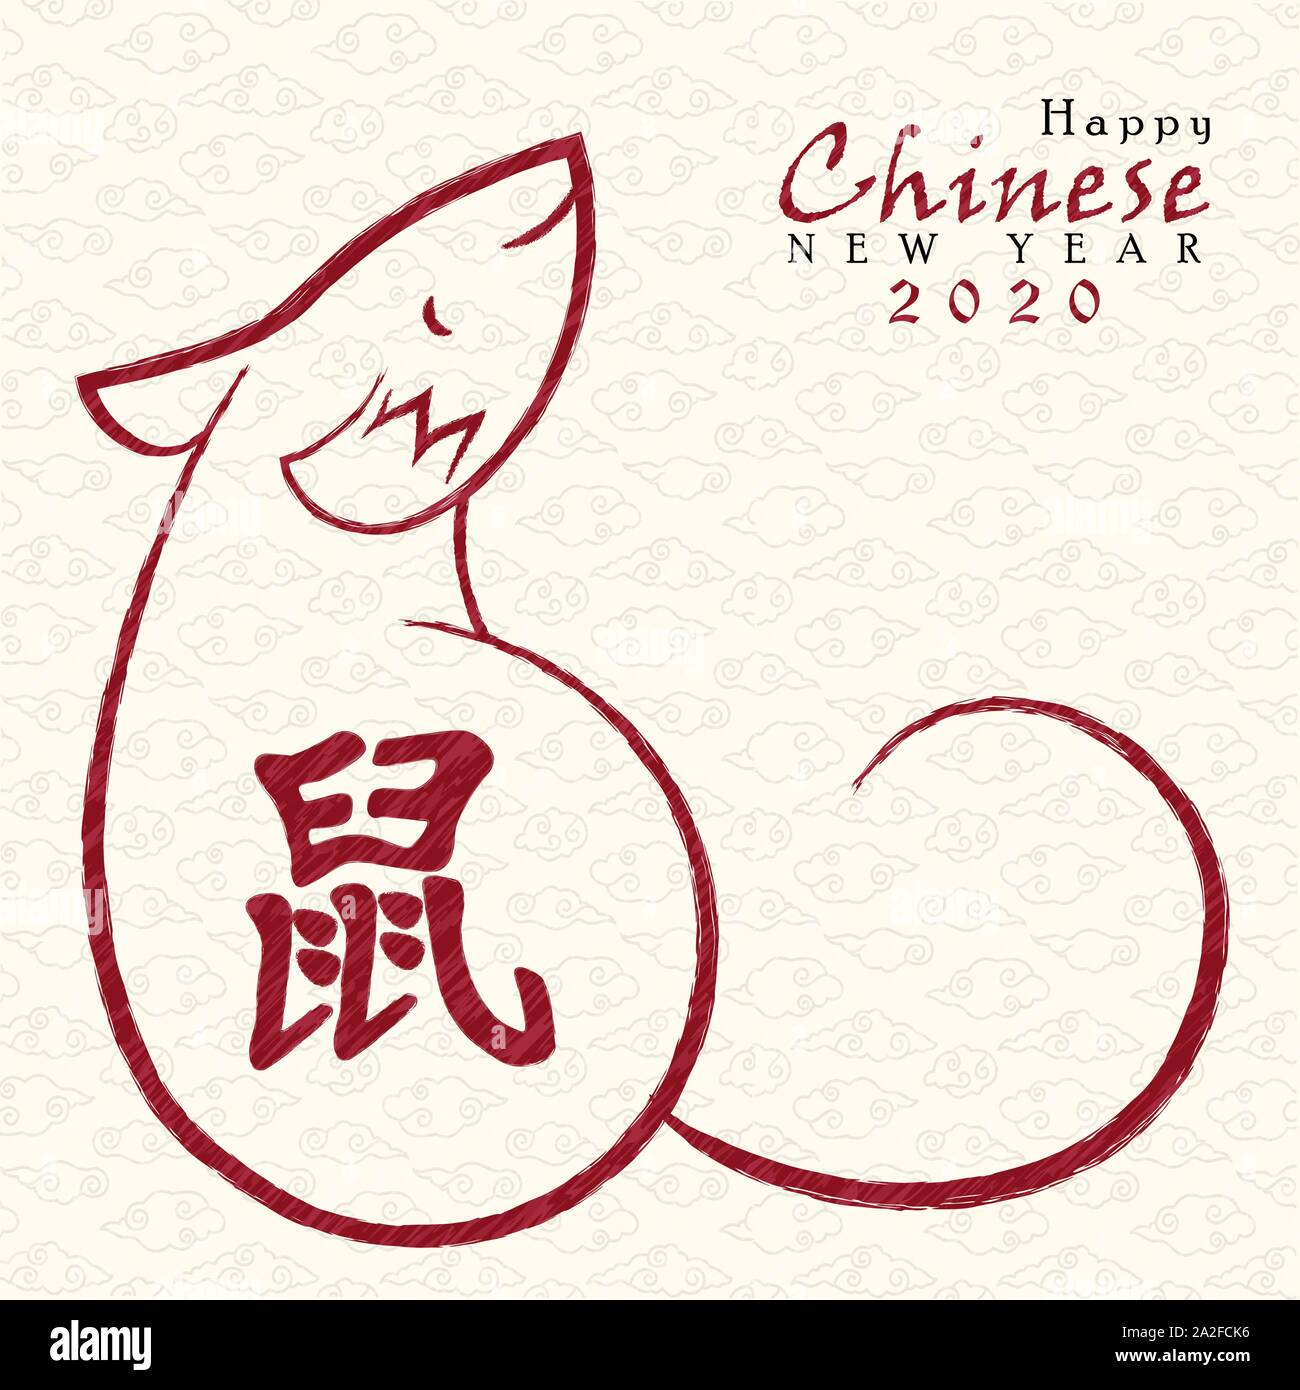 Chinese New Year 2020 Animal.Happy Chinese New Year 2020 Greeting Card Illustration Of